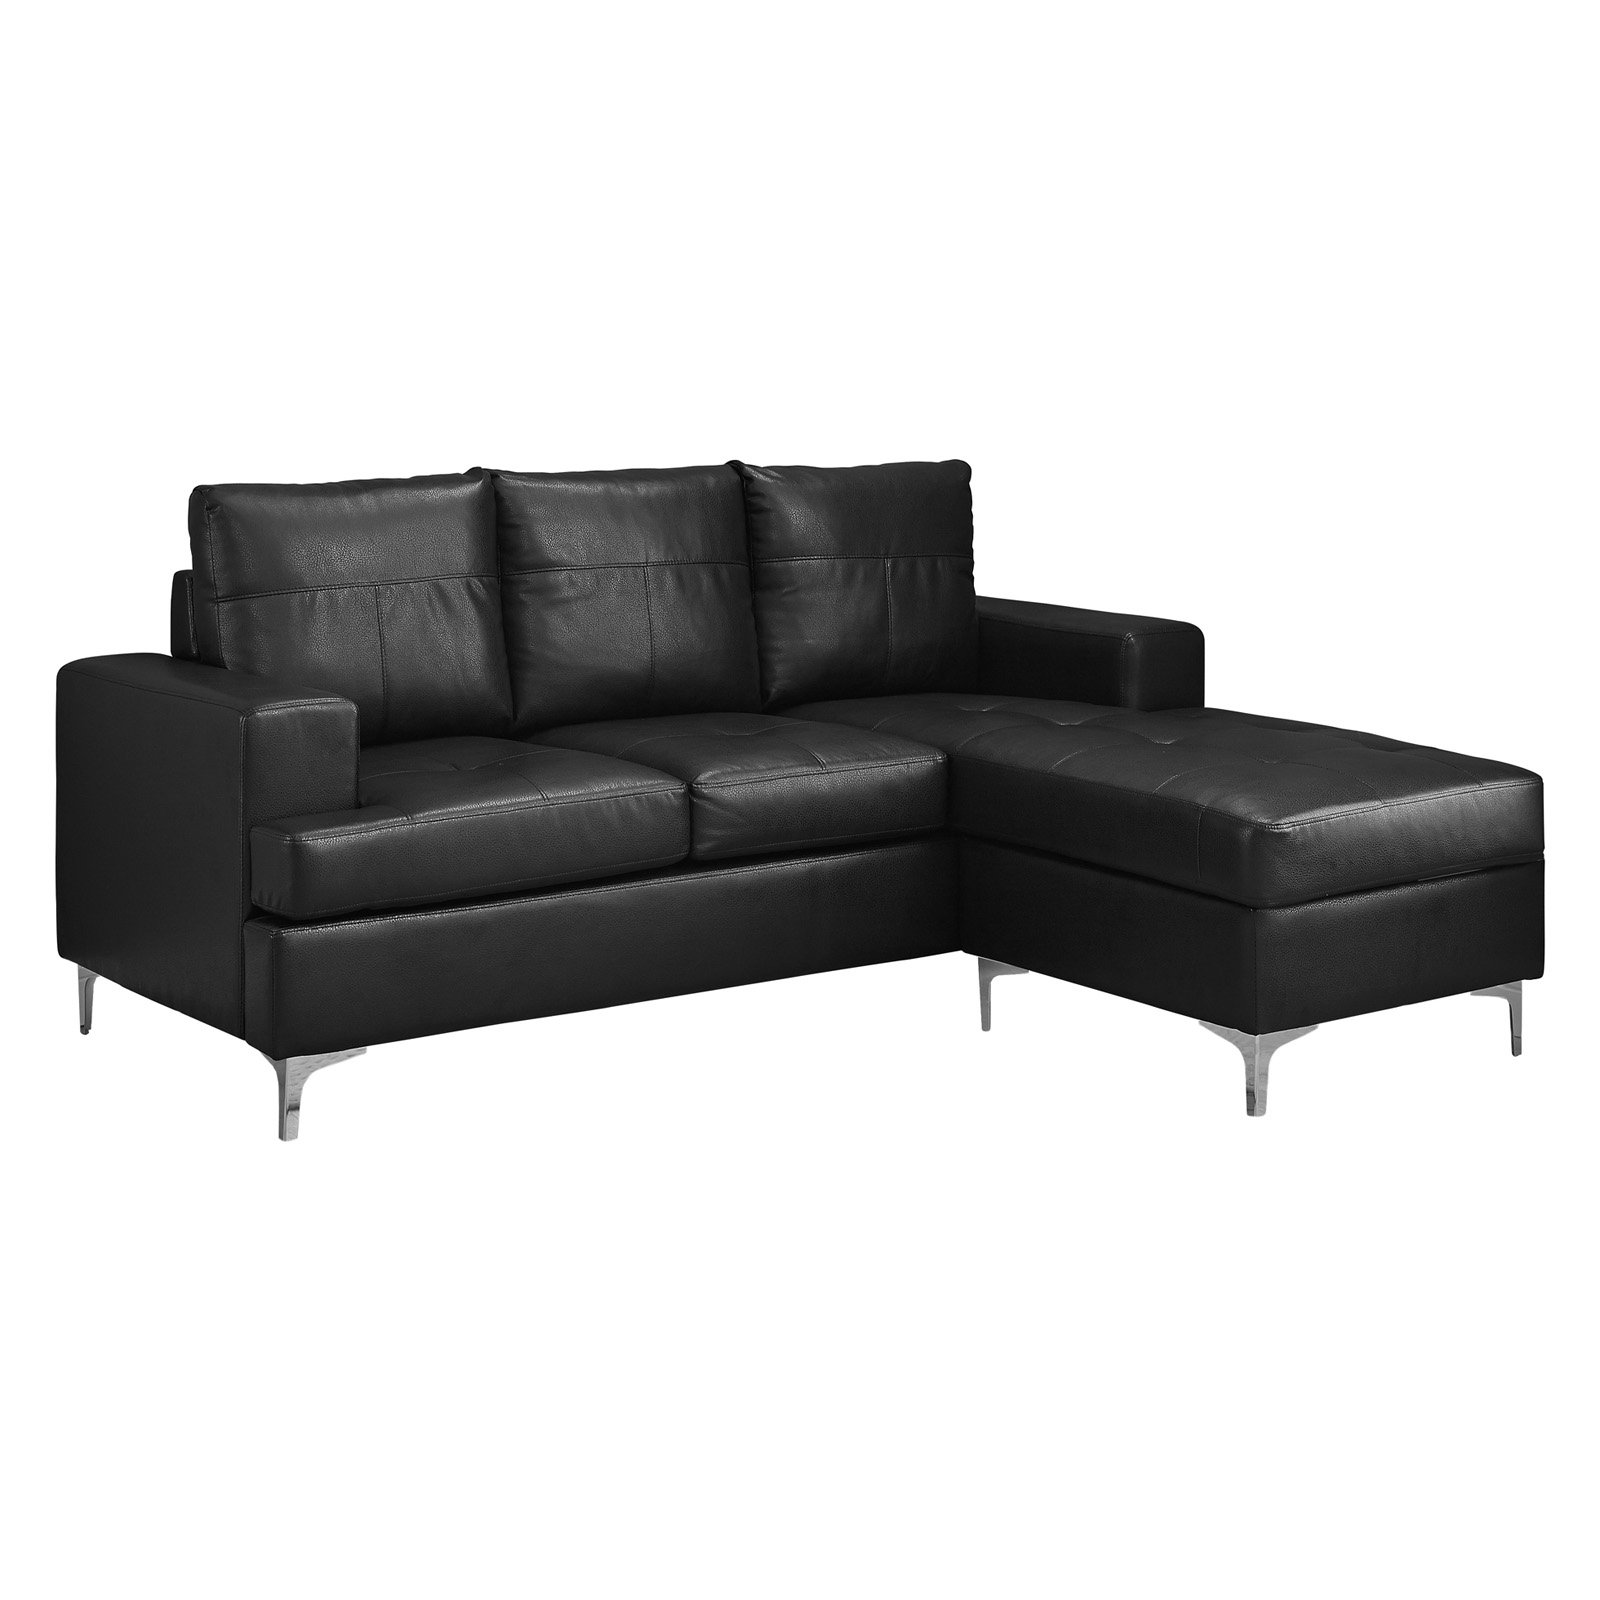 Monarch Sofa Lounger   Black Bonded Leather